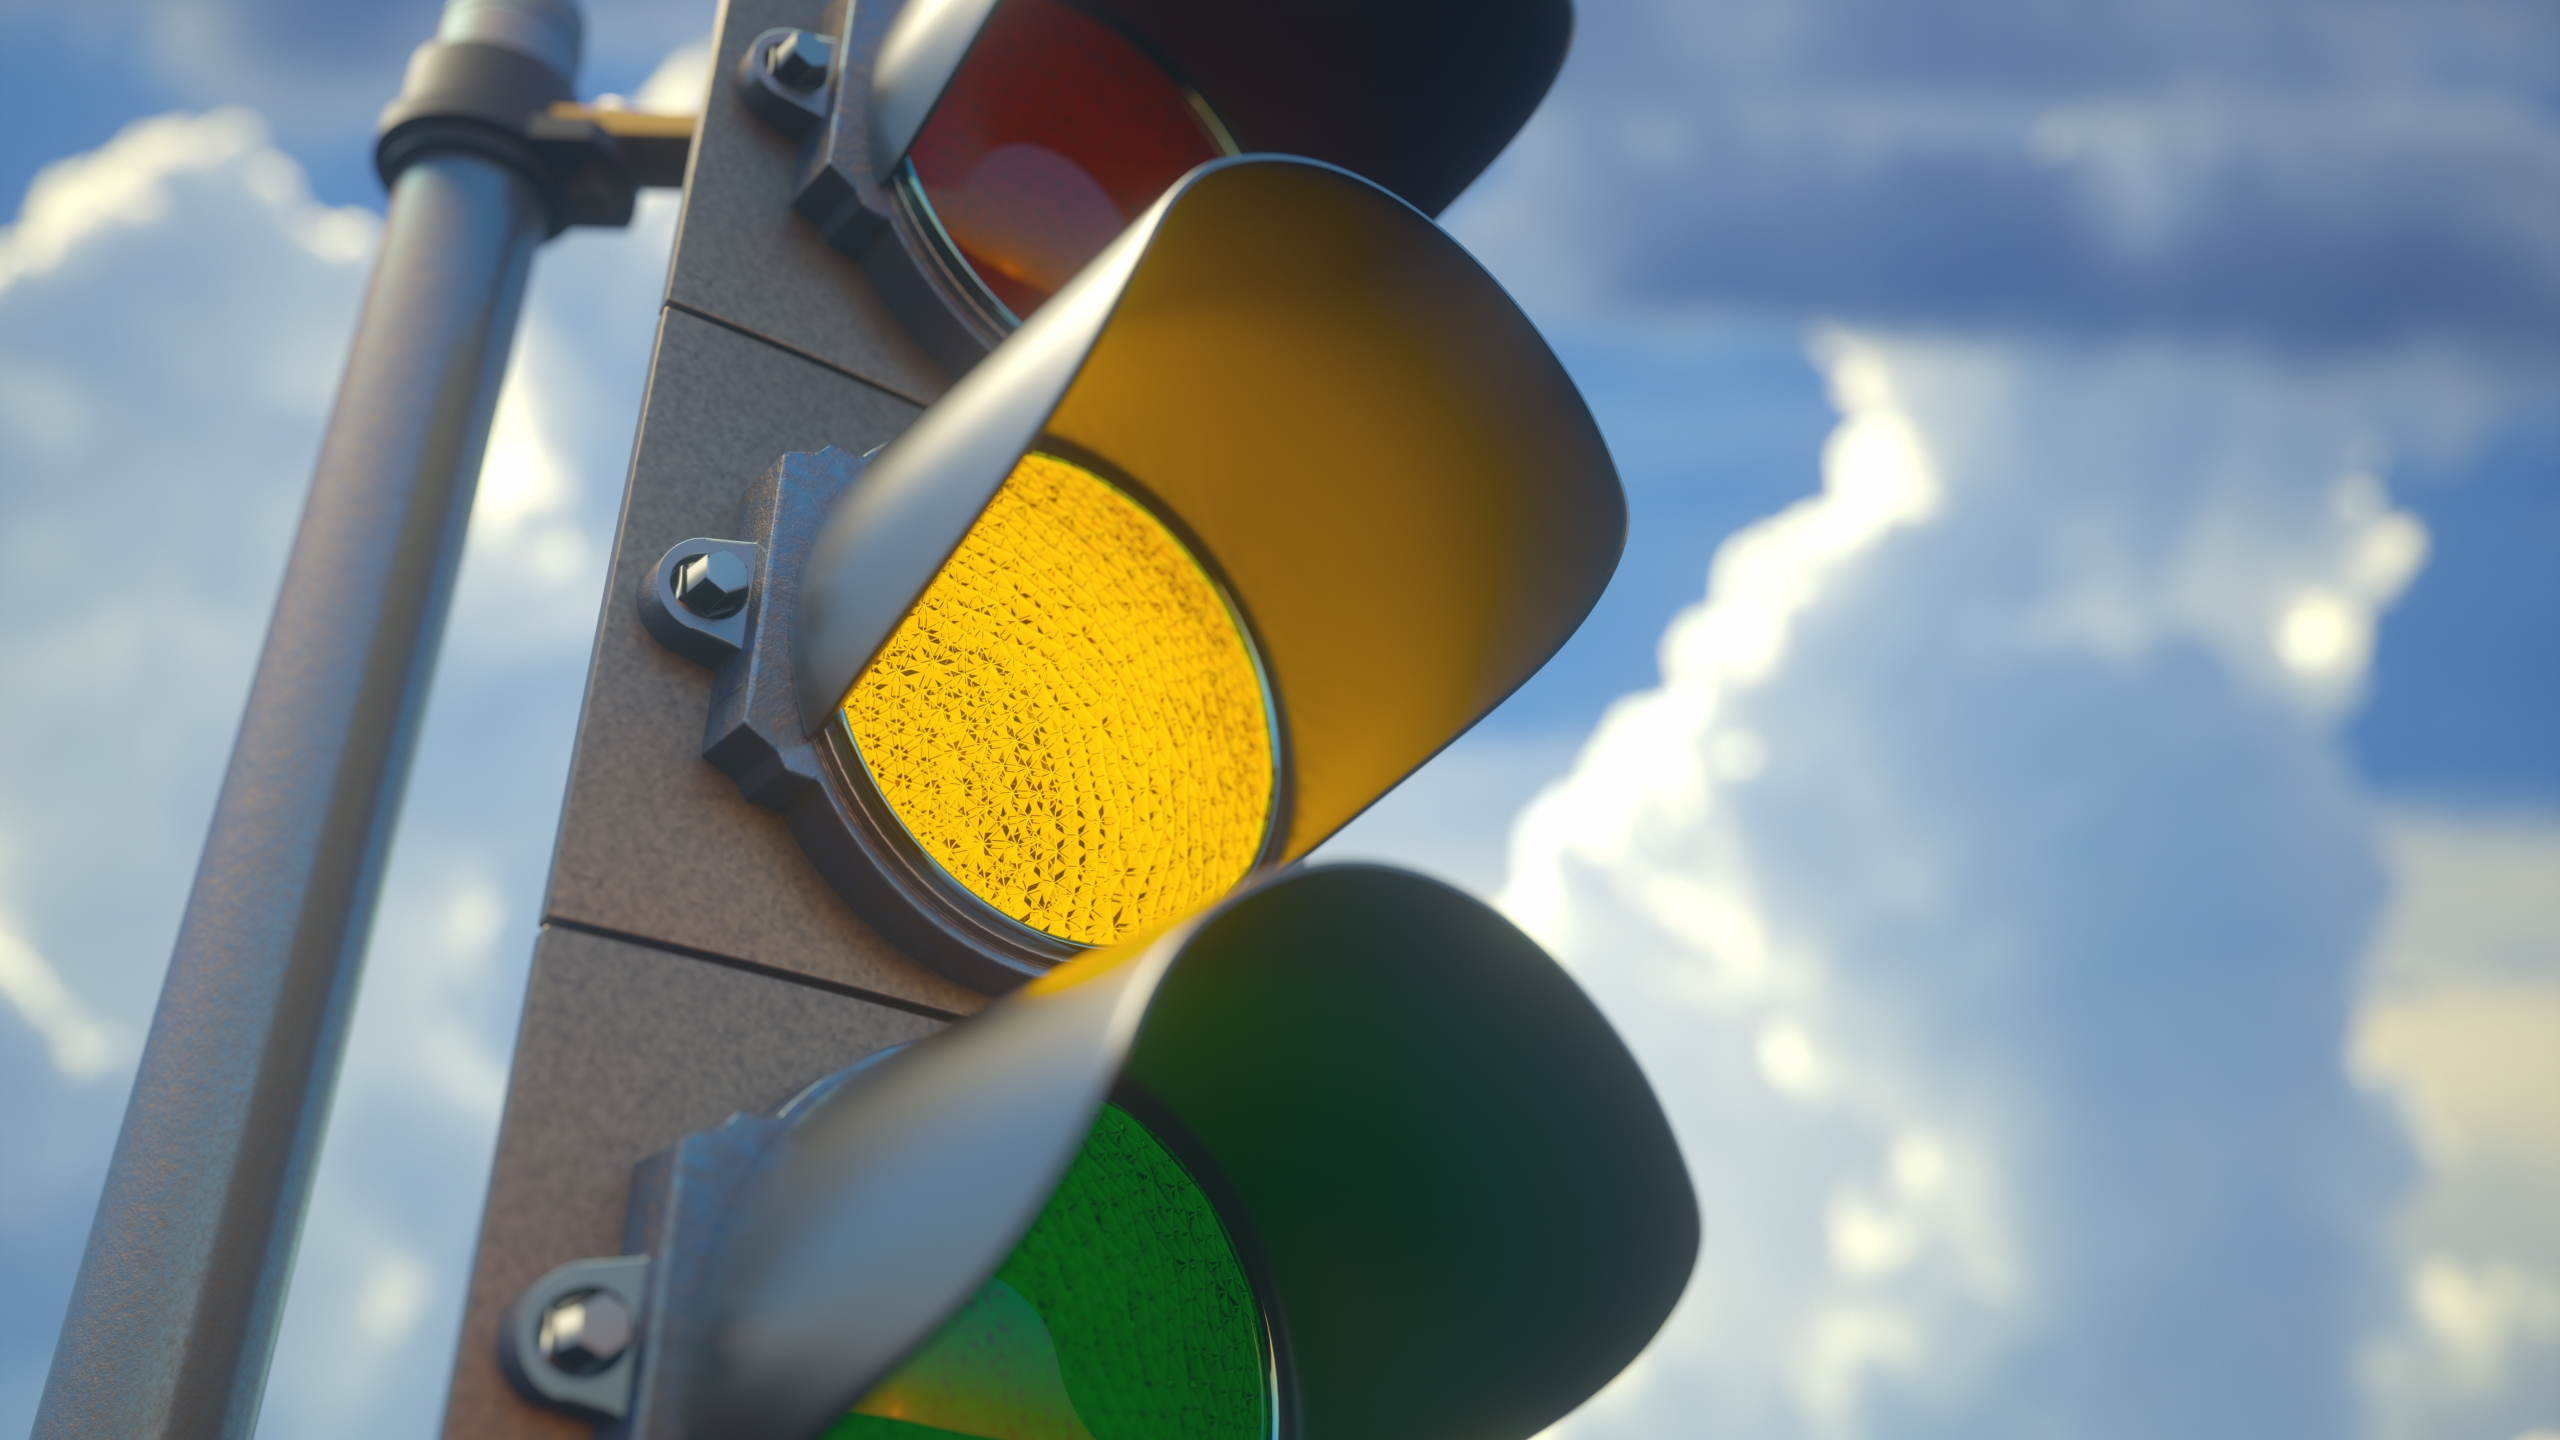 A traffic light with a yellow light on is seen in this file photo. (Credit: iStock/Getty Images Plus)